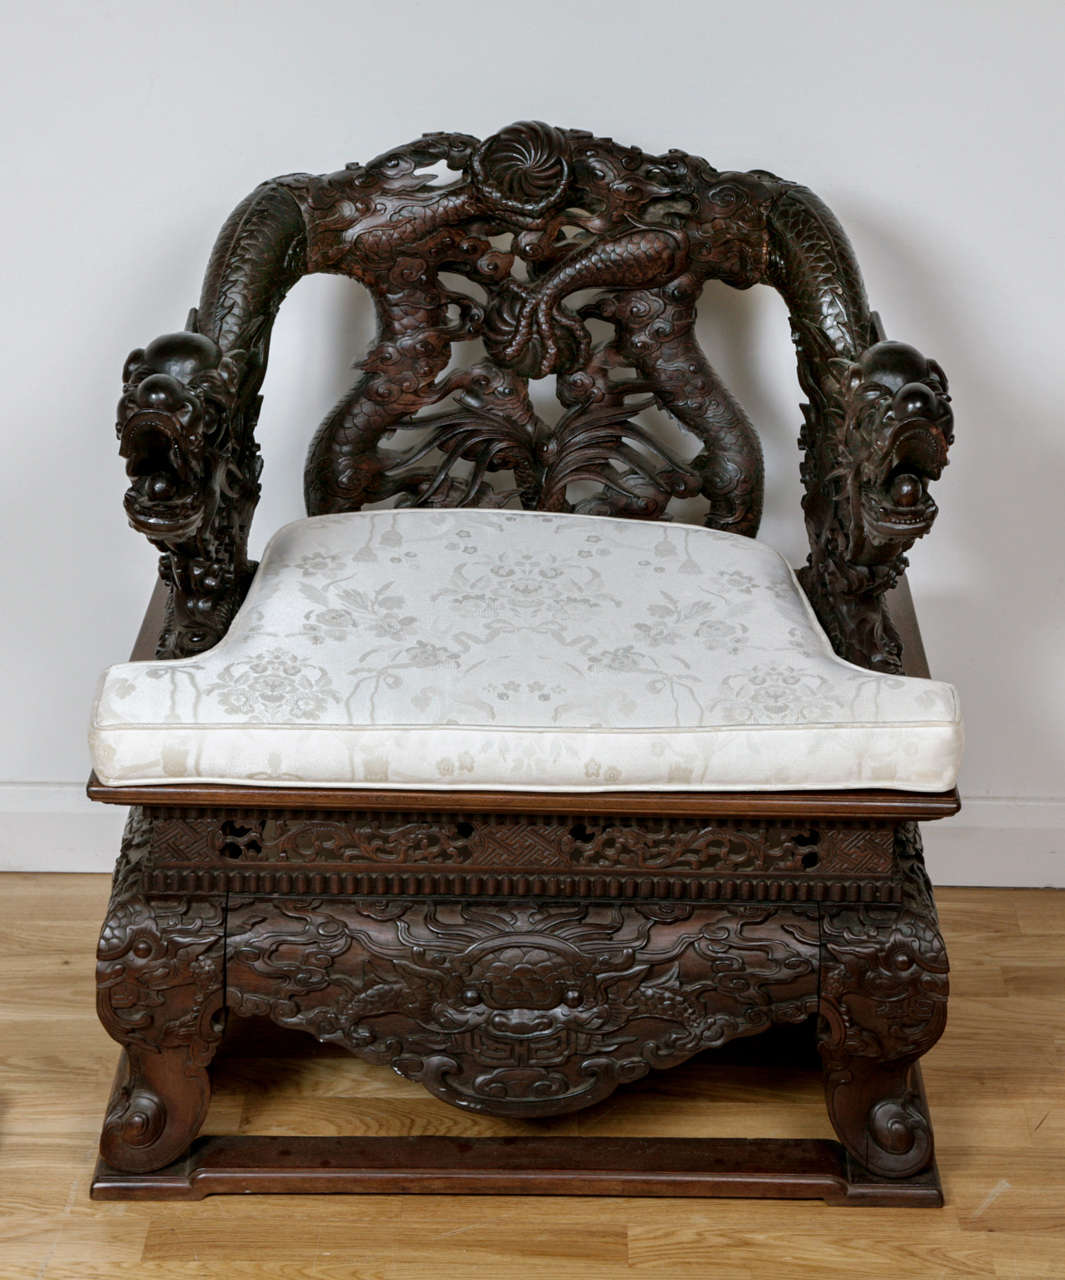 Profusely carved overall, the back and arms depicting two opposing dragons with entwined tails over a panelled seat with cream squab cushion, the low relief carved frame depicting swirling clouds and dragons.